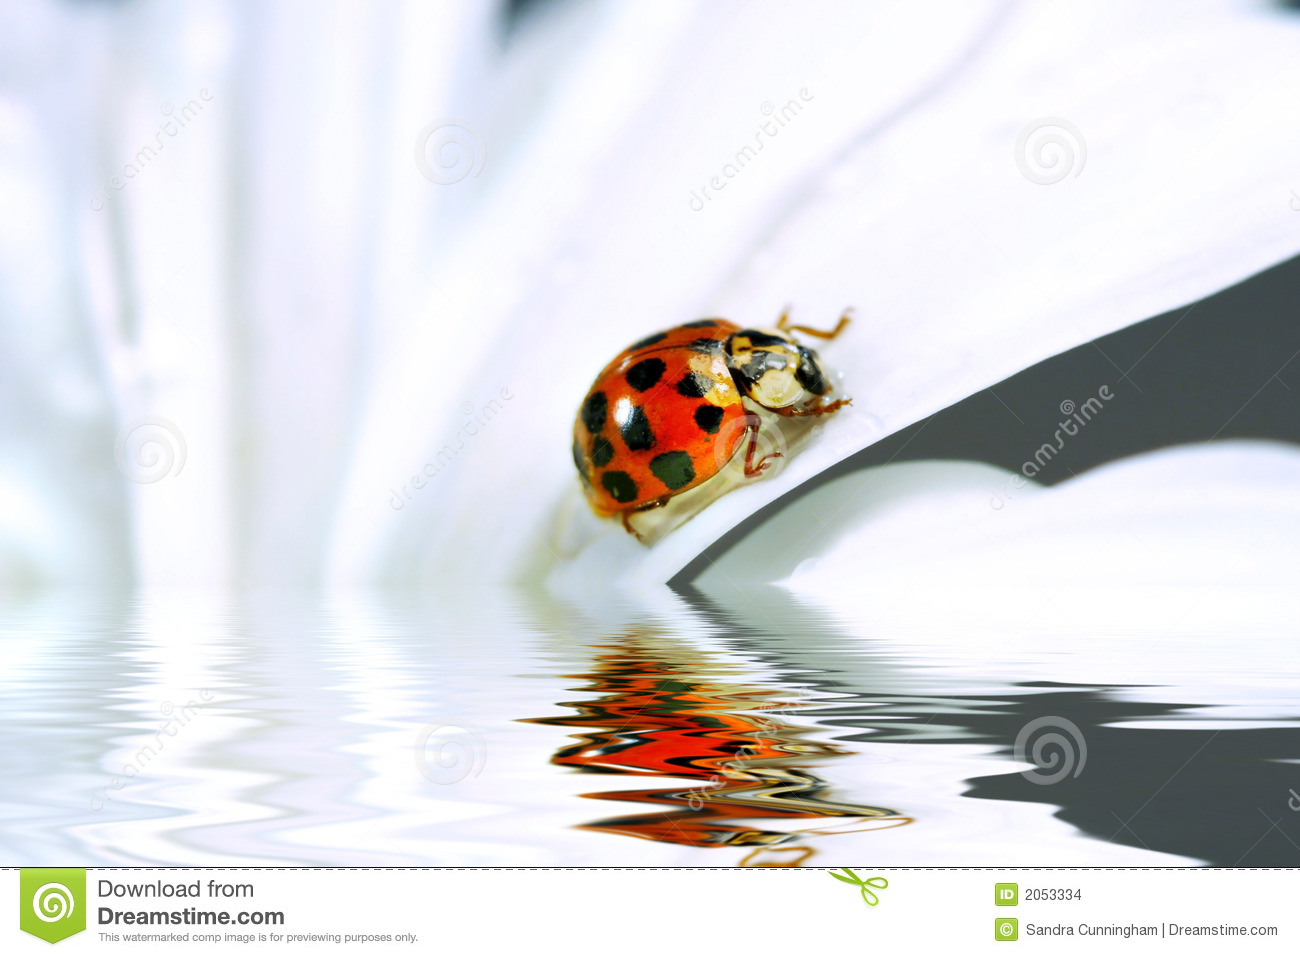 Free Download Ladybug Daisy Free Image HD Wallpaper